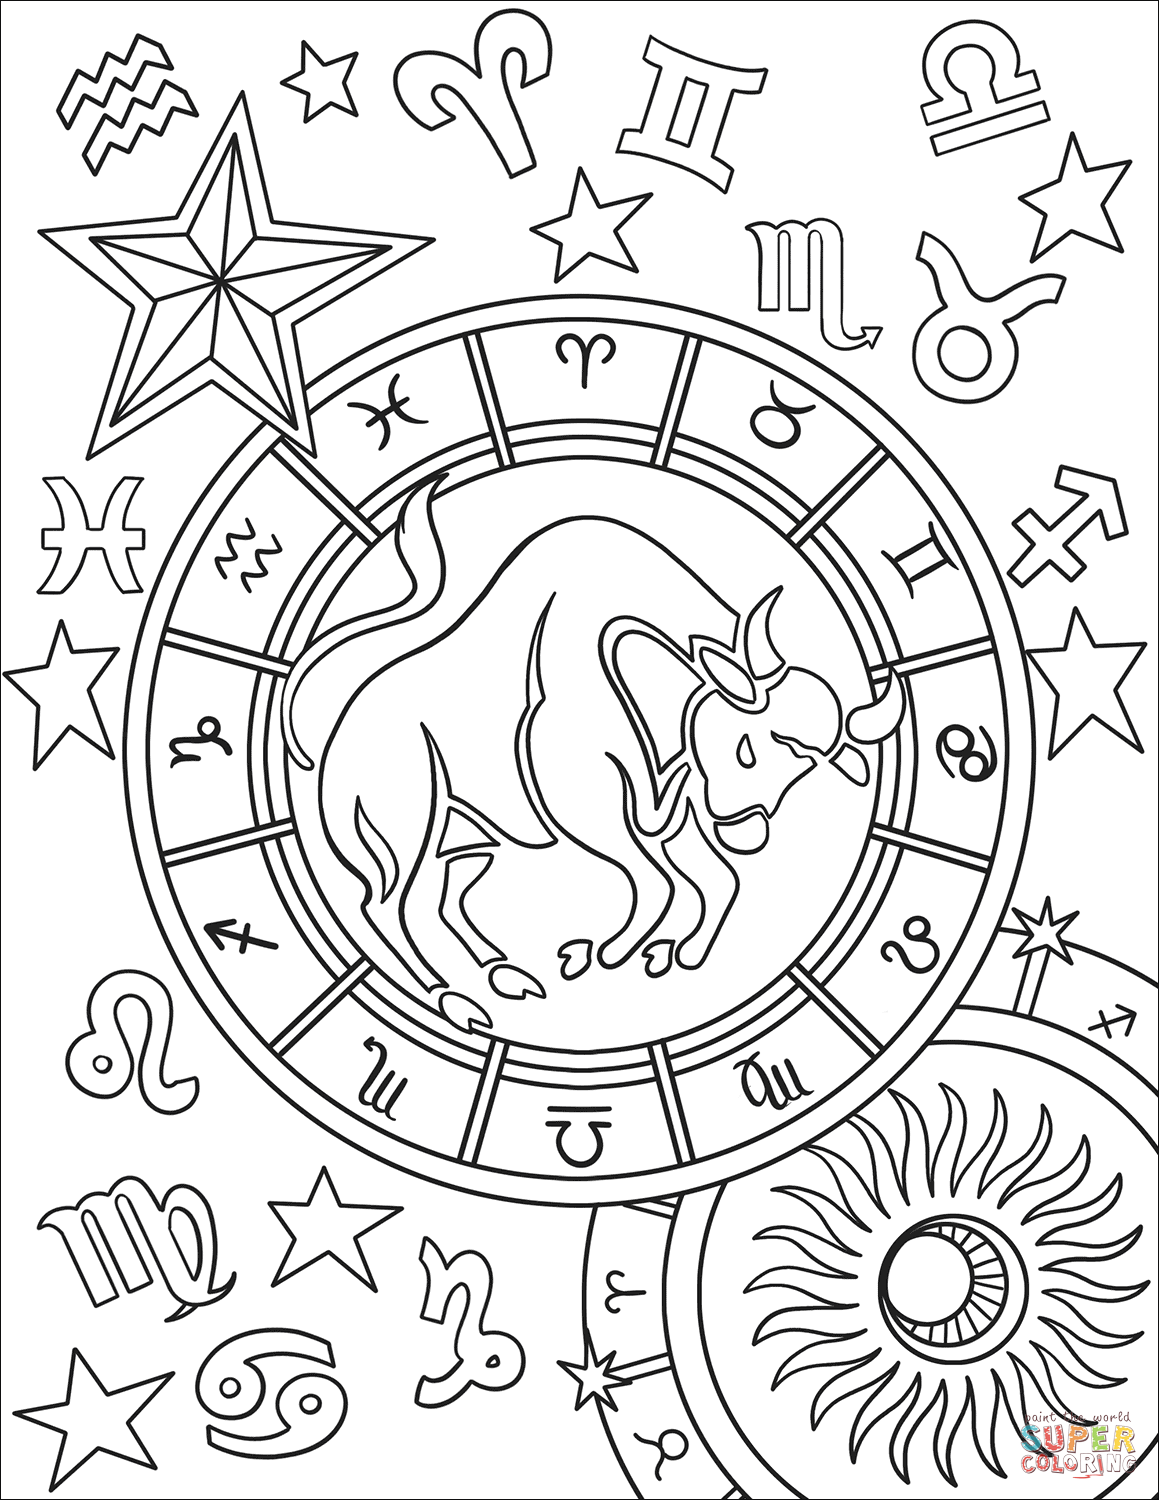 zodiac coloring pages chinese zodiac coloring pages coloring home pages zodiac coloring